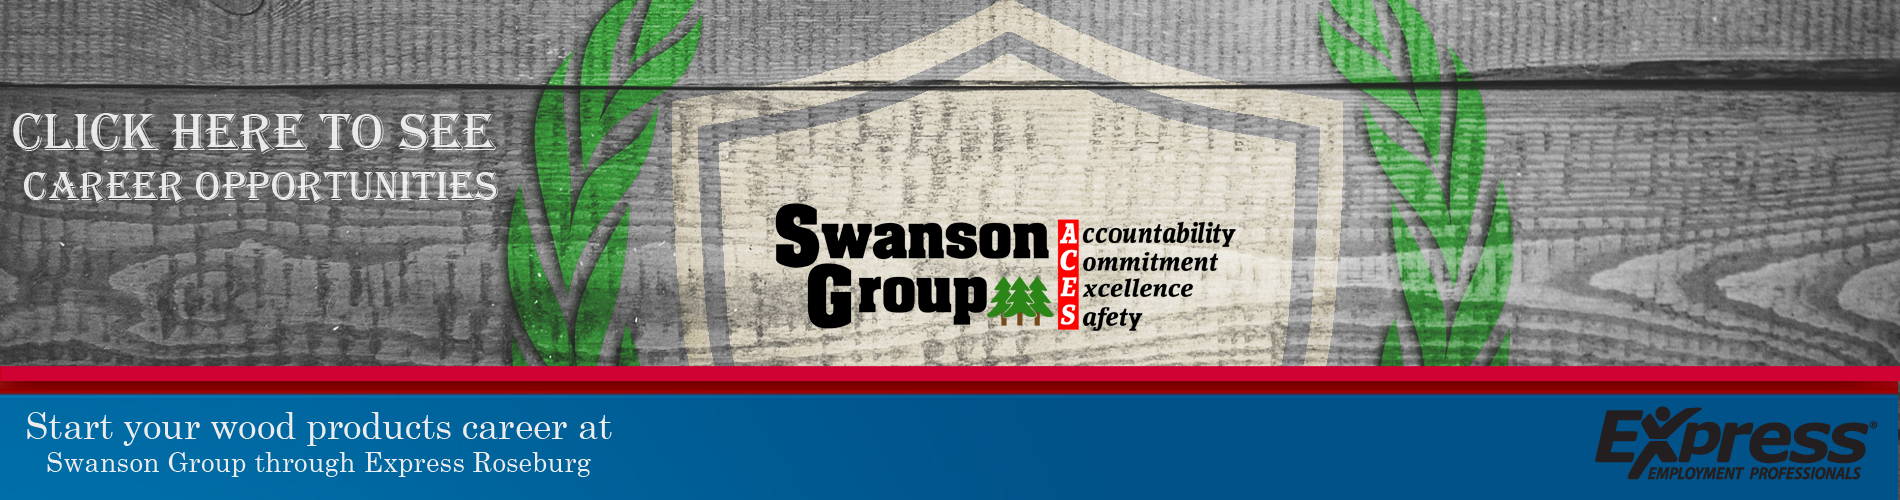 Swanson Group Website Banner